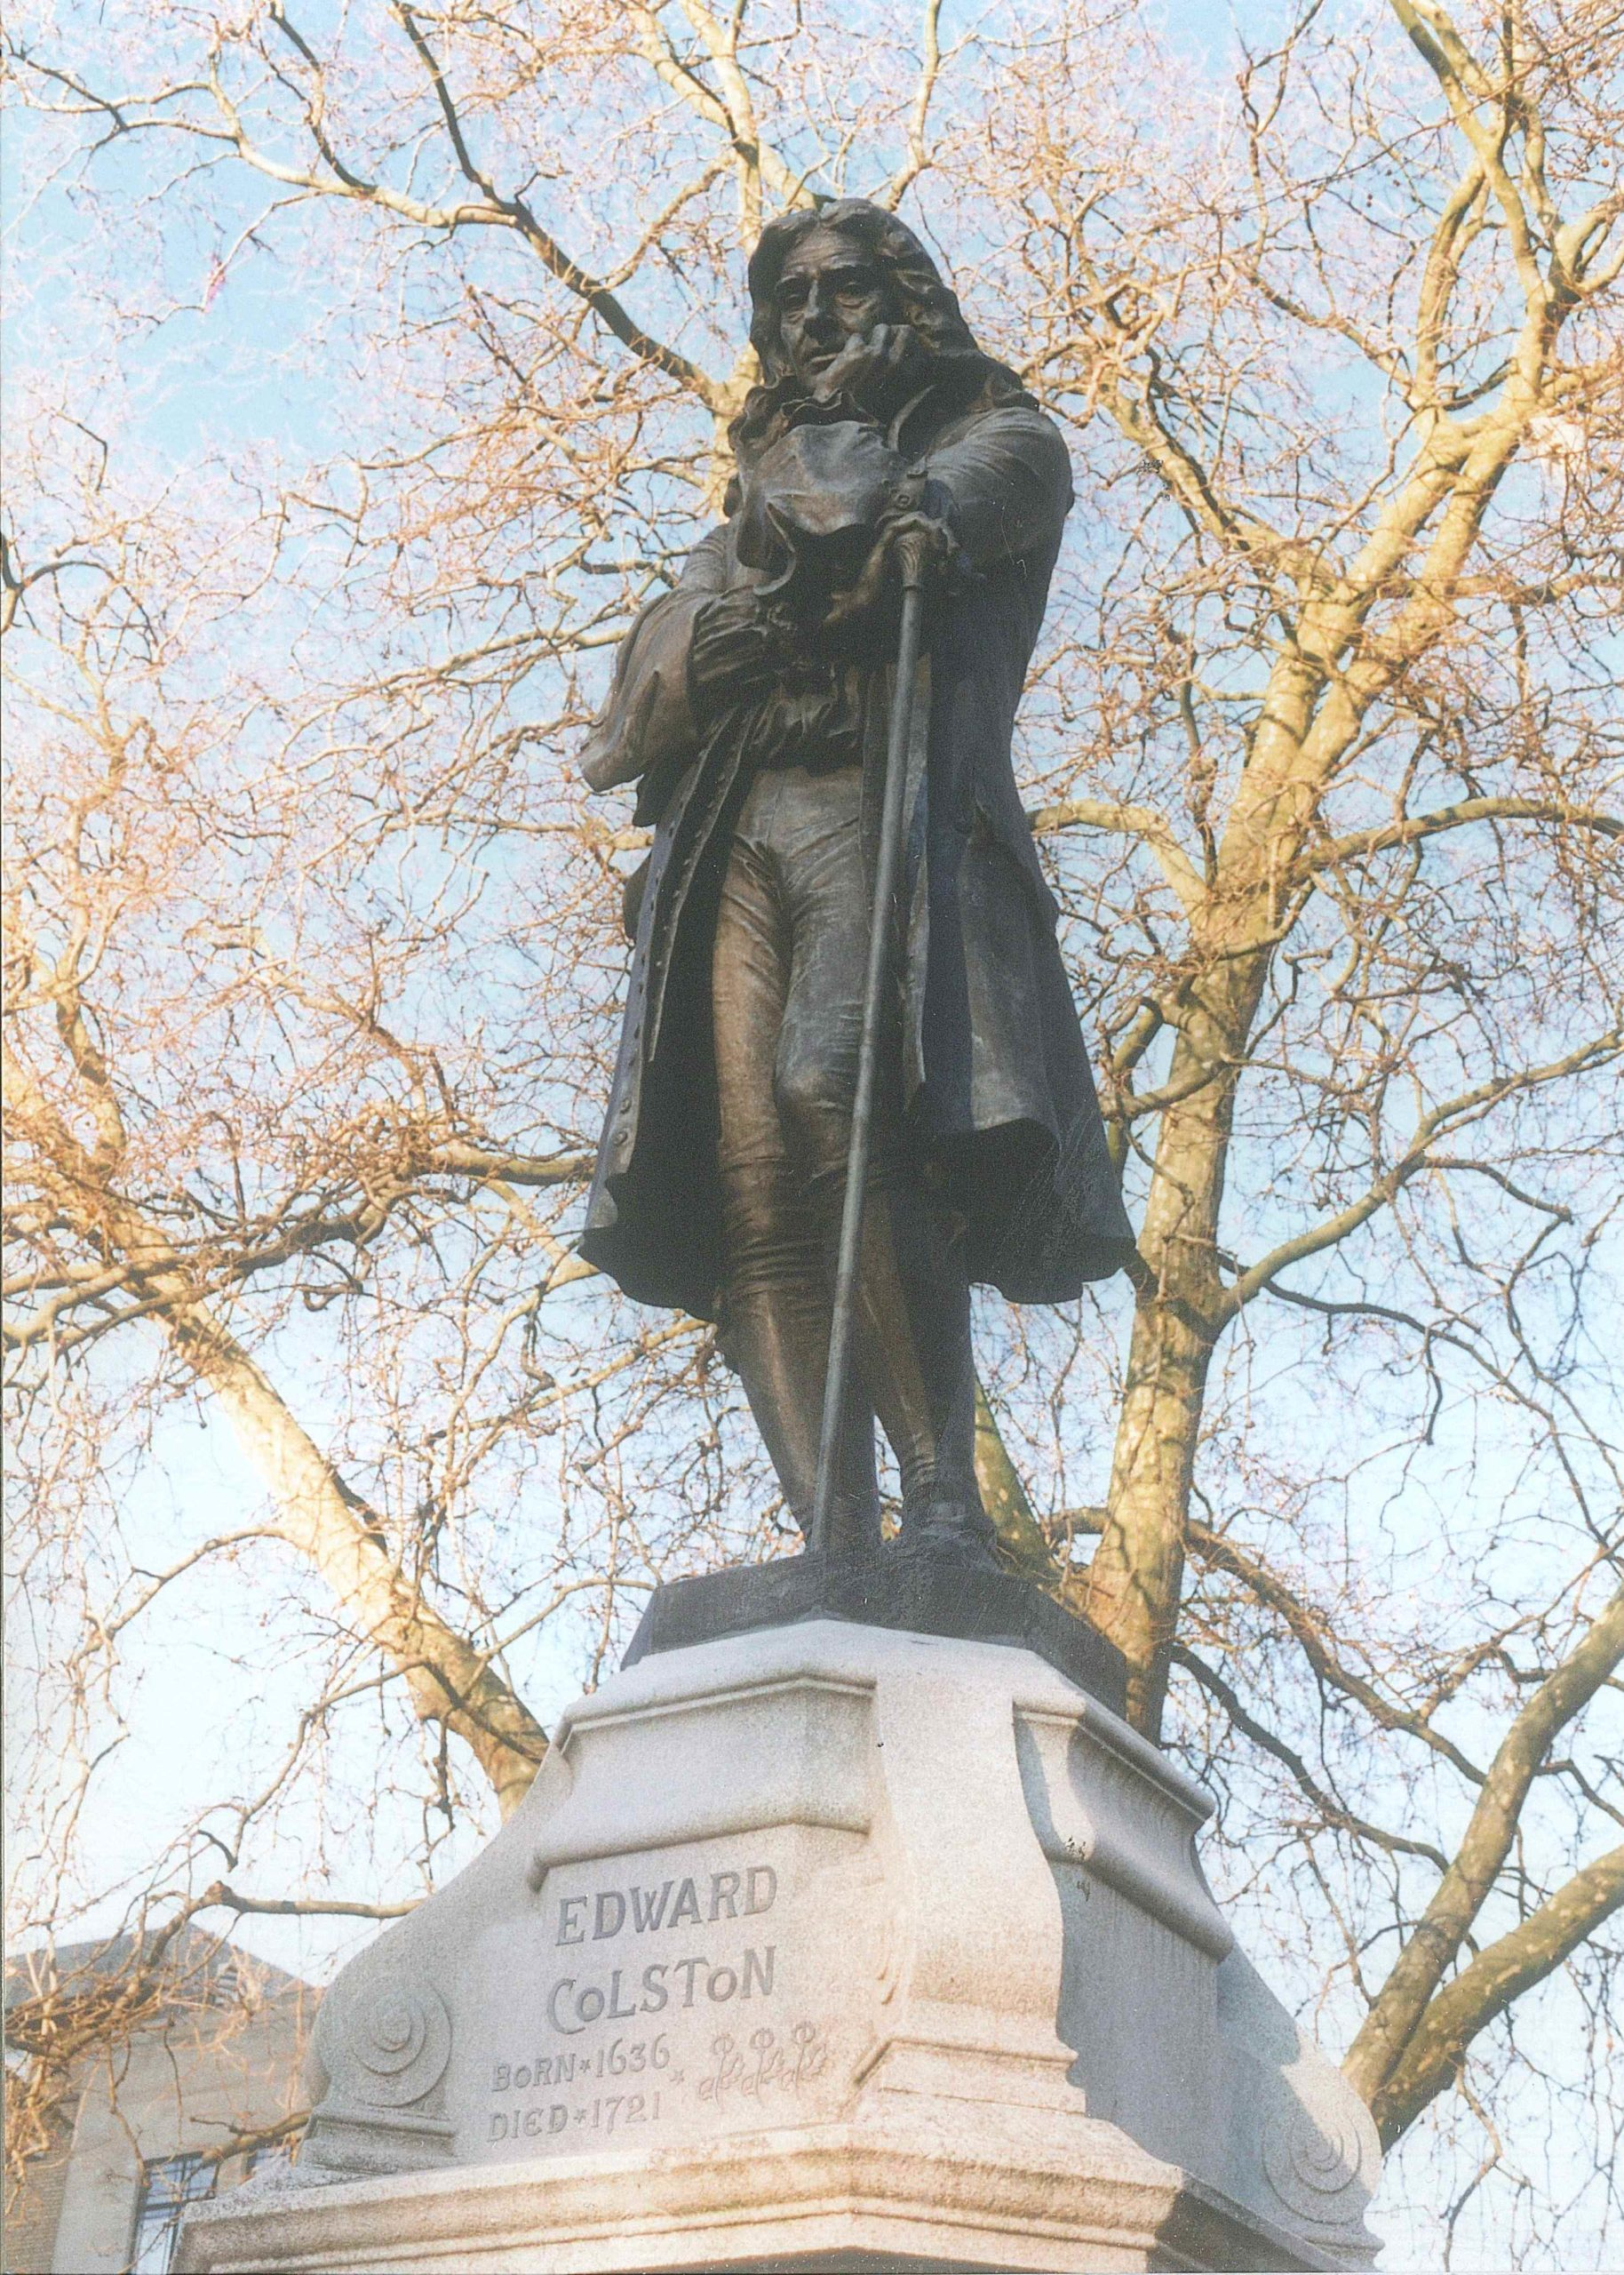 Picture of the statue of Edward Colston on statue plinth in Bristol